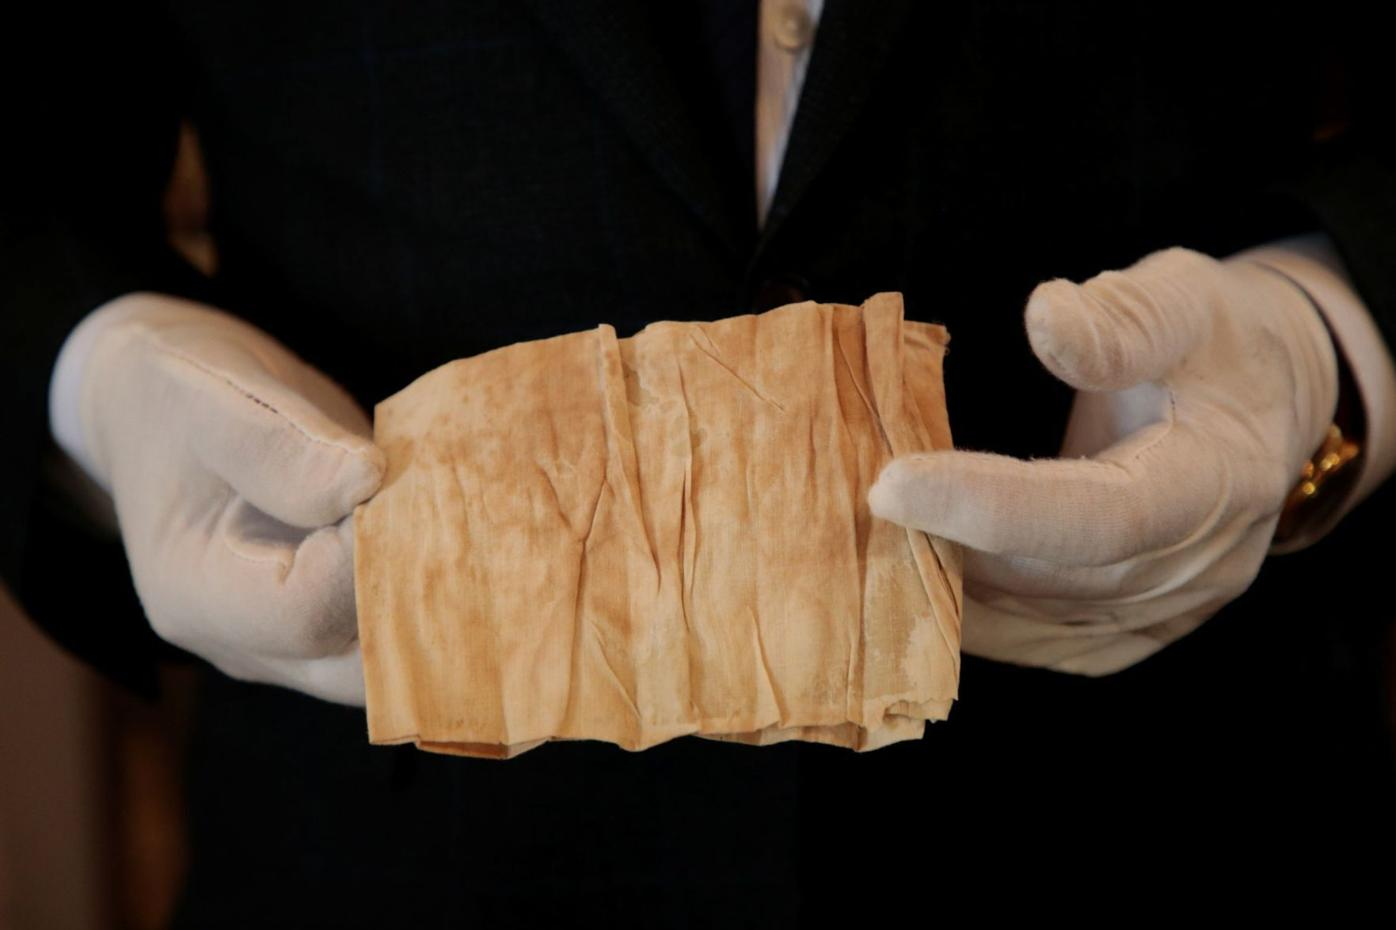 Stockings and a bloodied cloth for auction on Napoleon's bicentenary